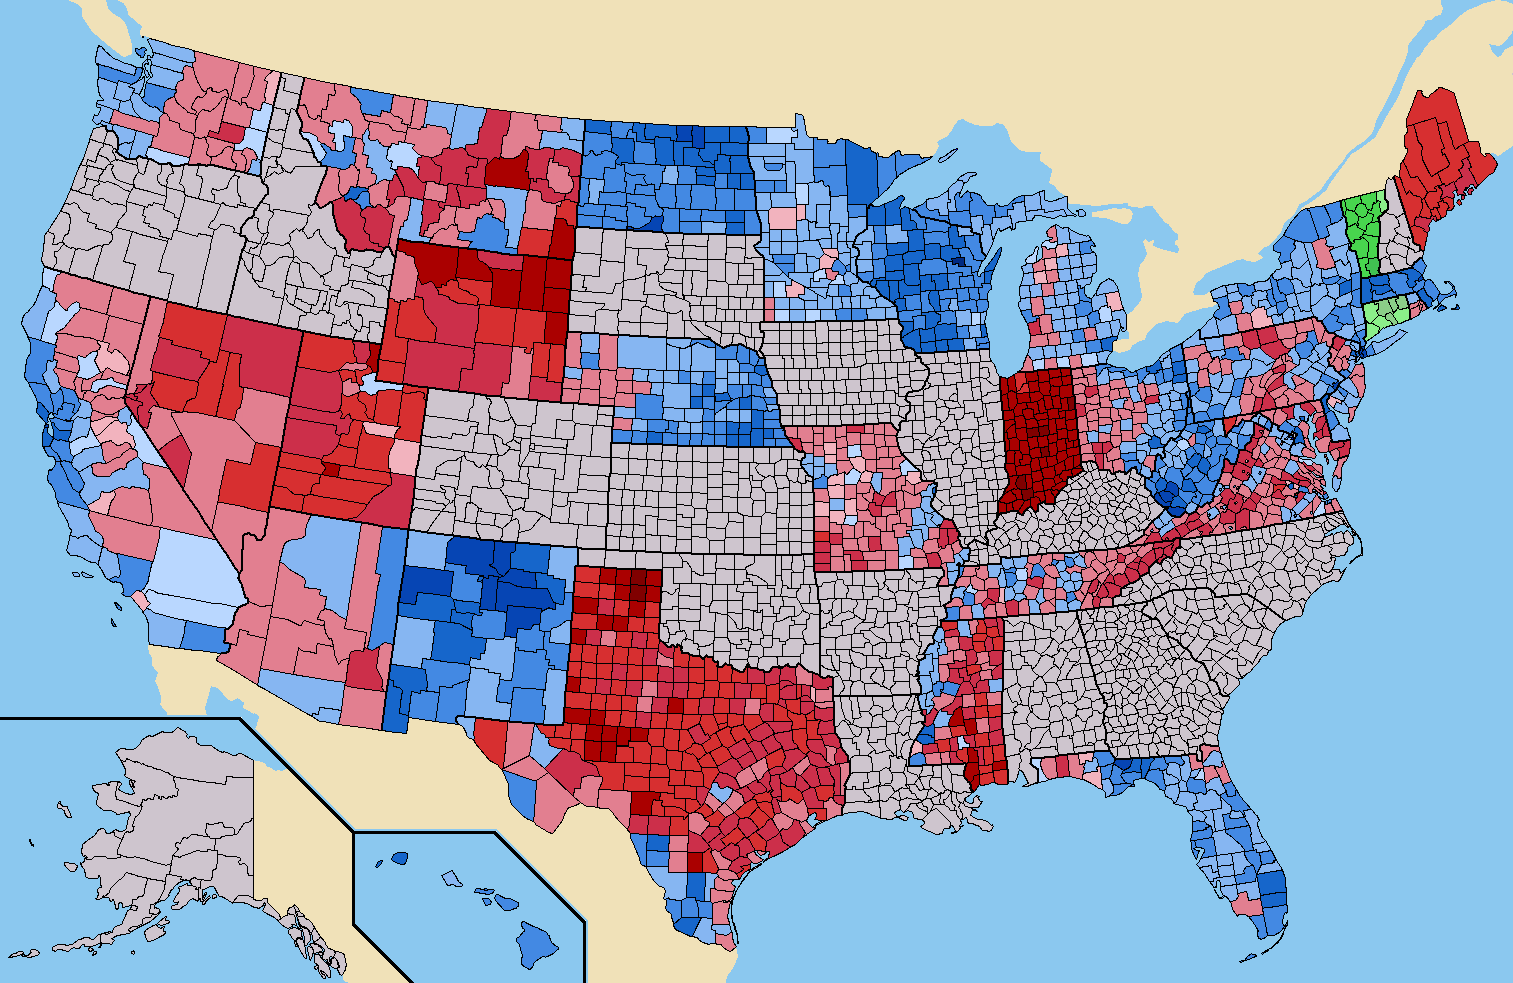 File US Senate Election Results By Countypng Wikimedia Commons - 2016 election results us map by county